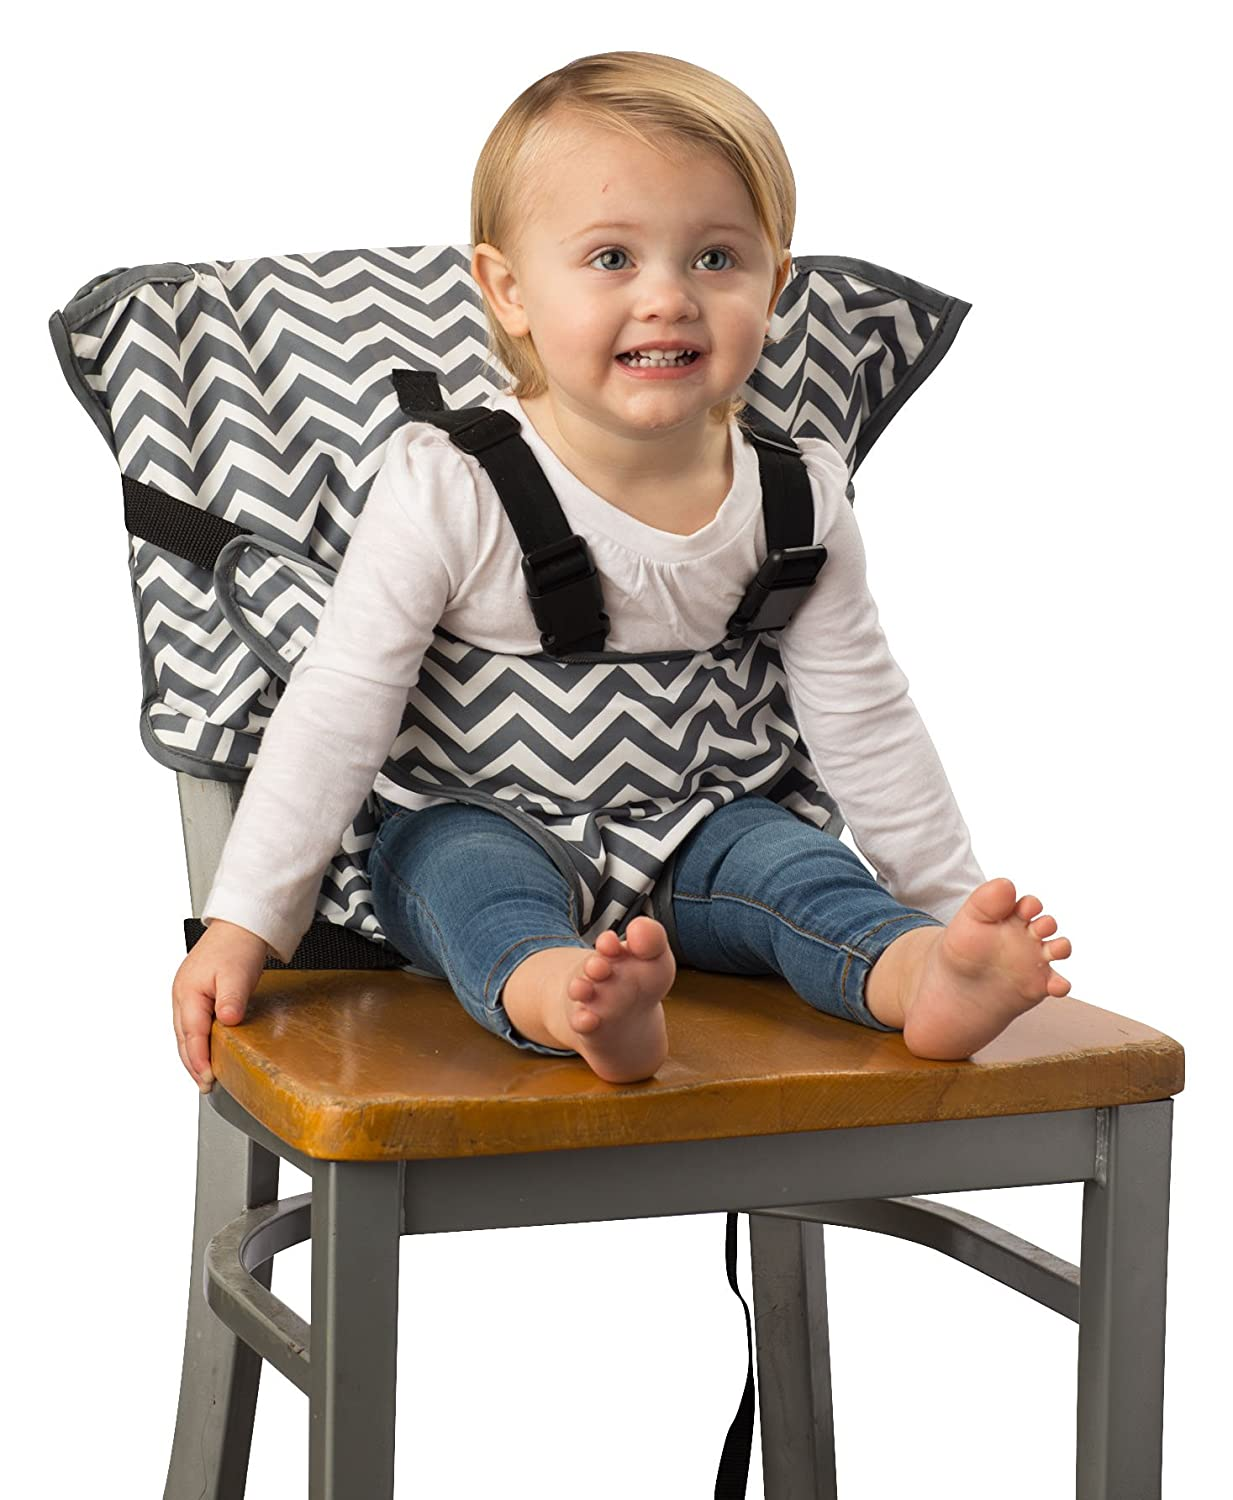 Amazon.com : Cozy Cover Easy Seat   Portable Travel High Chair And Safety  Seat For Infants And Toddlers (Black/Green) : Baby